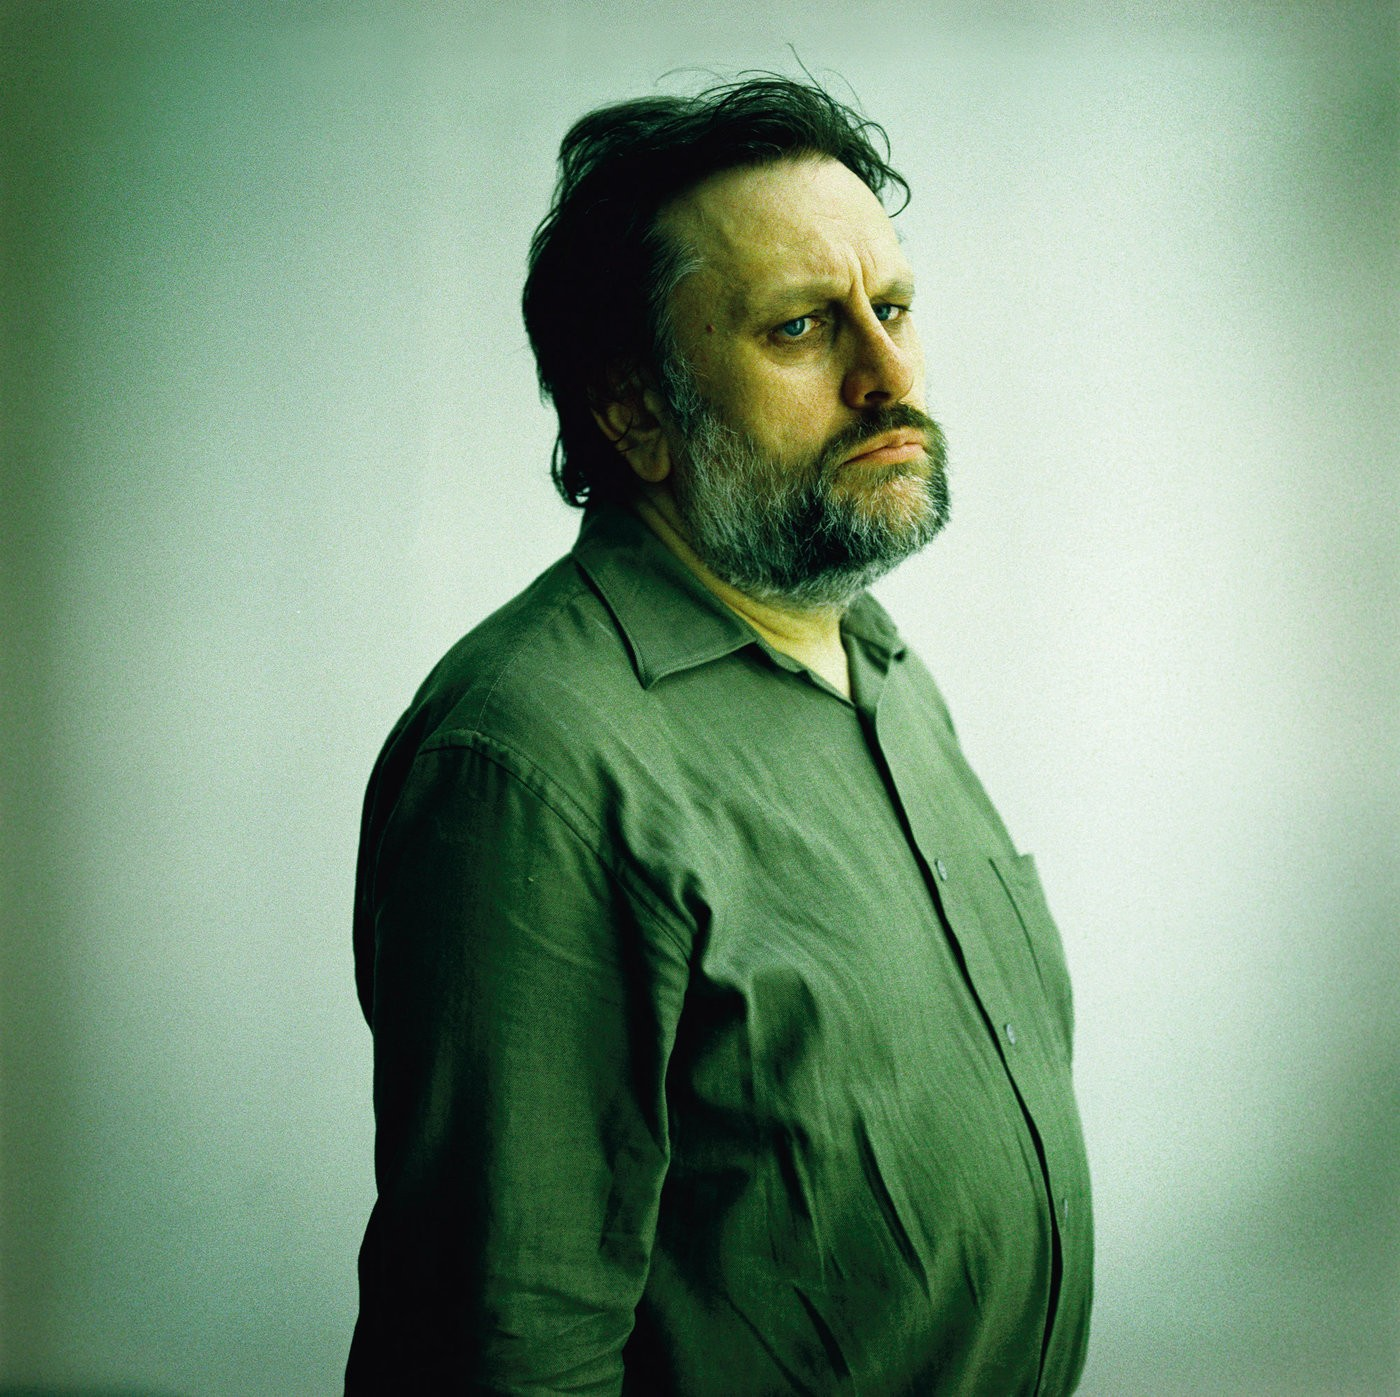 Medium zizek hh 04140793